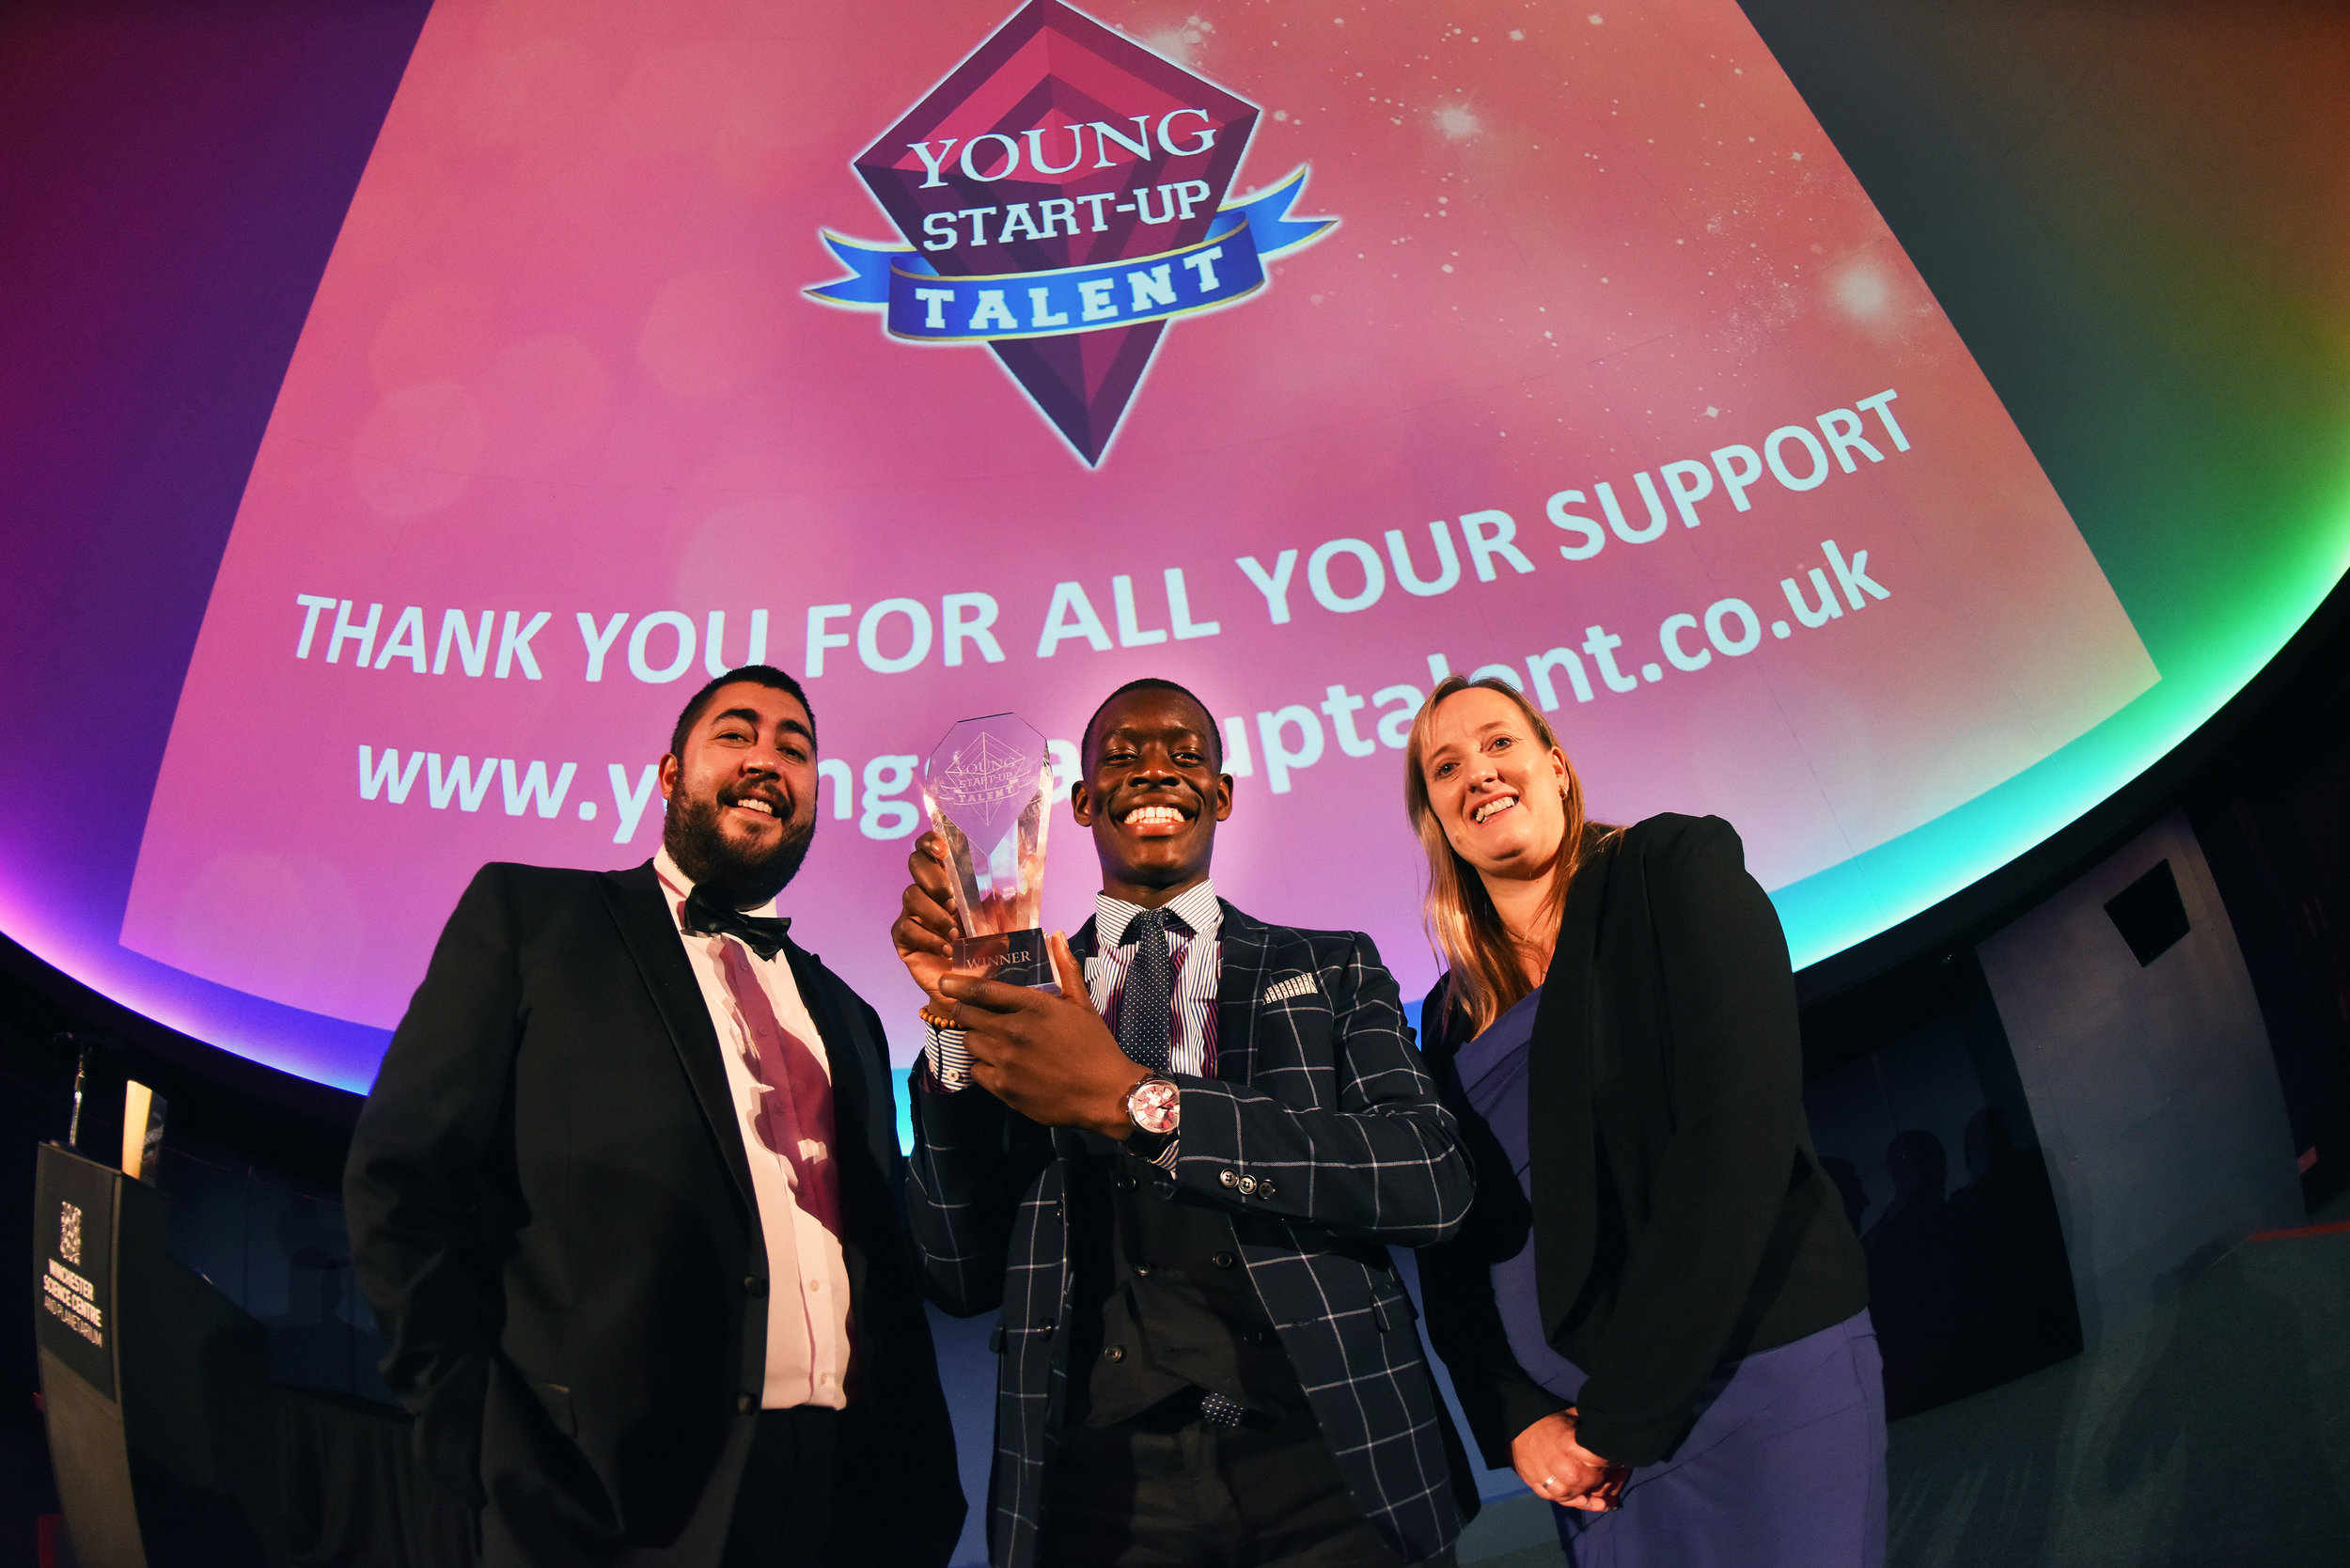 Matt Turner, Jeremy Mutebi and Lorraine Nugent